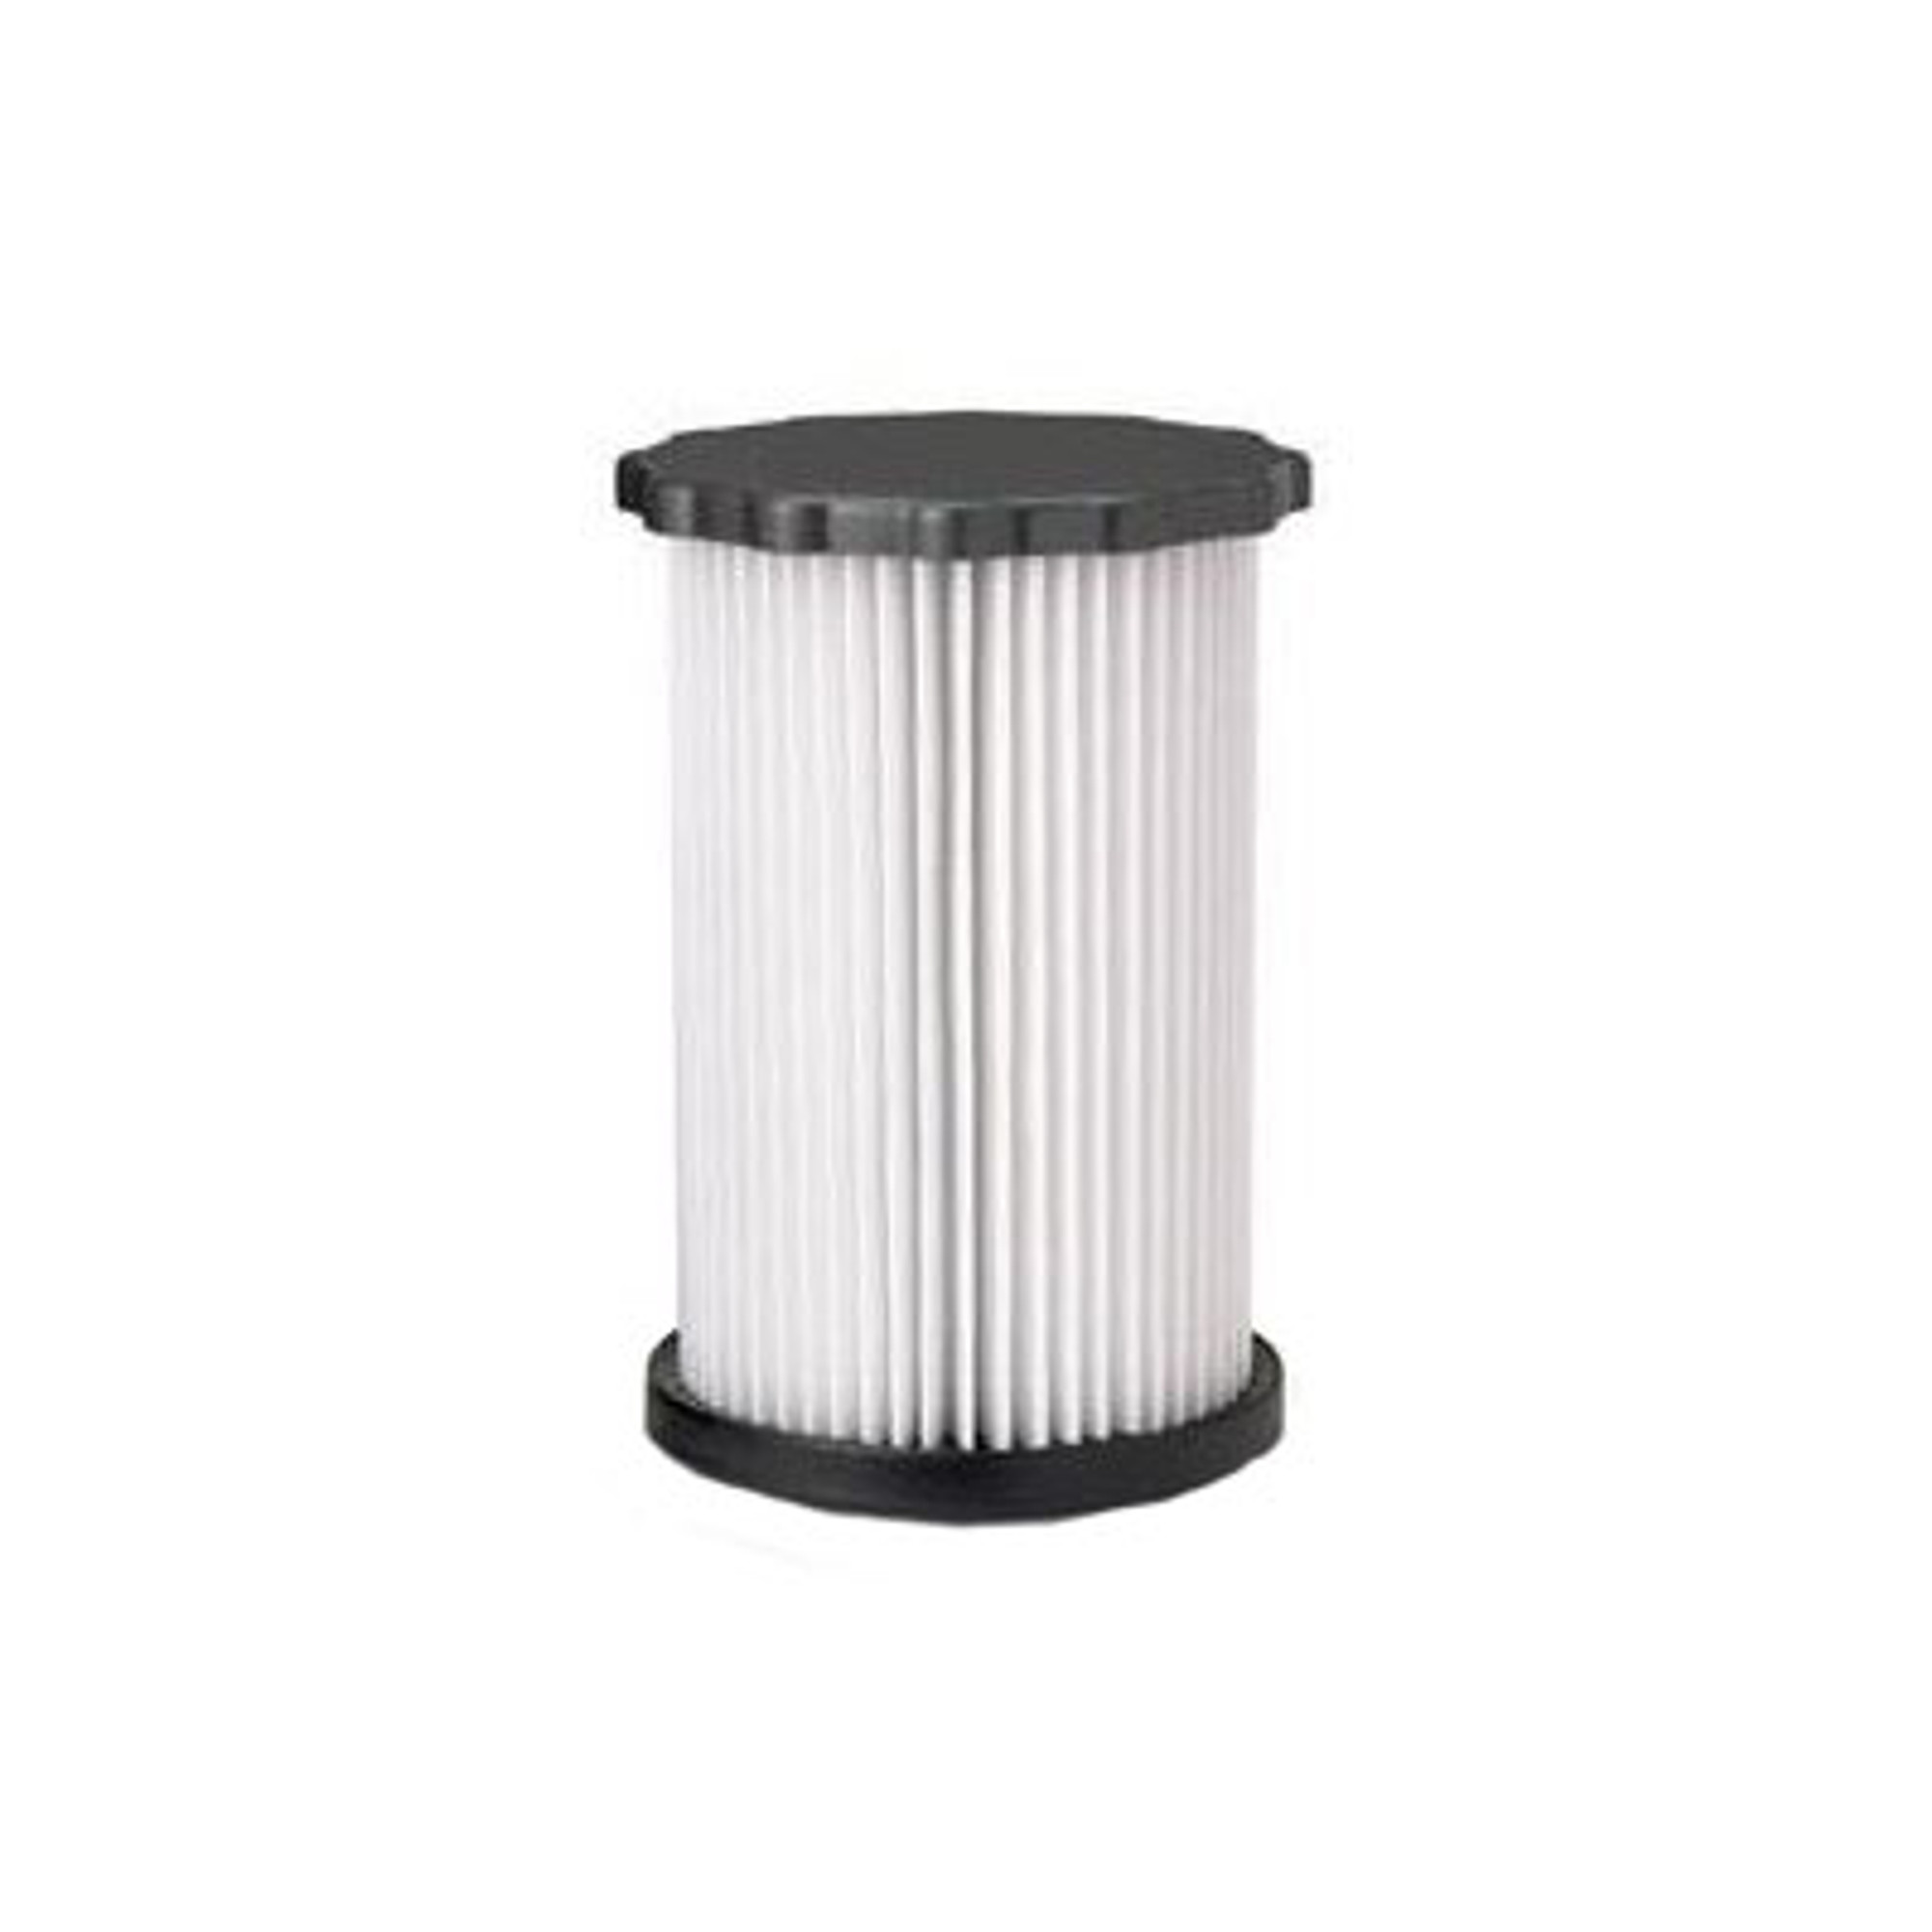 Buy Dirt Devil Vacuum Cleaner Dirt Cup Filter Type F3